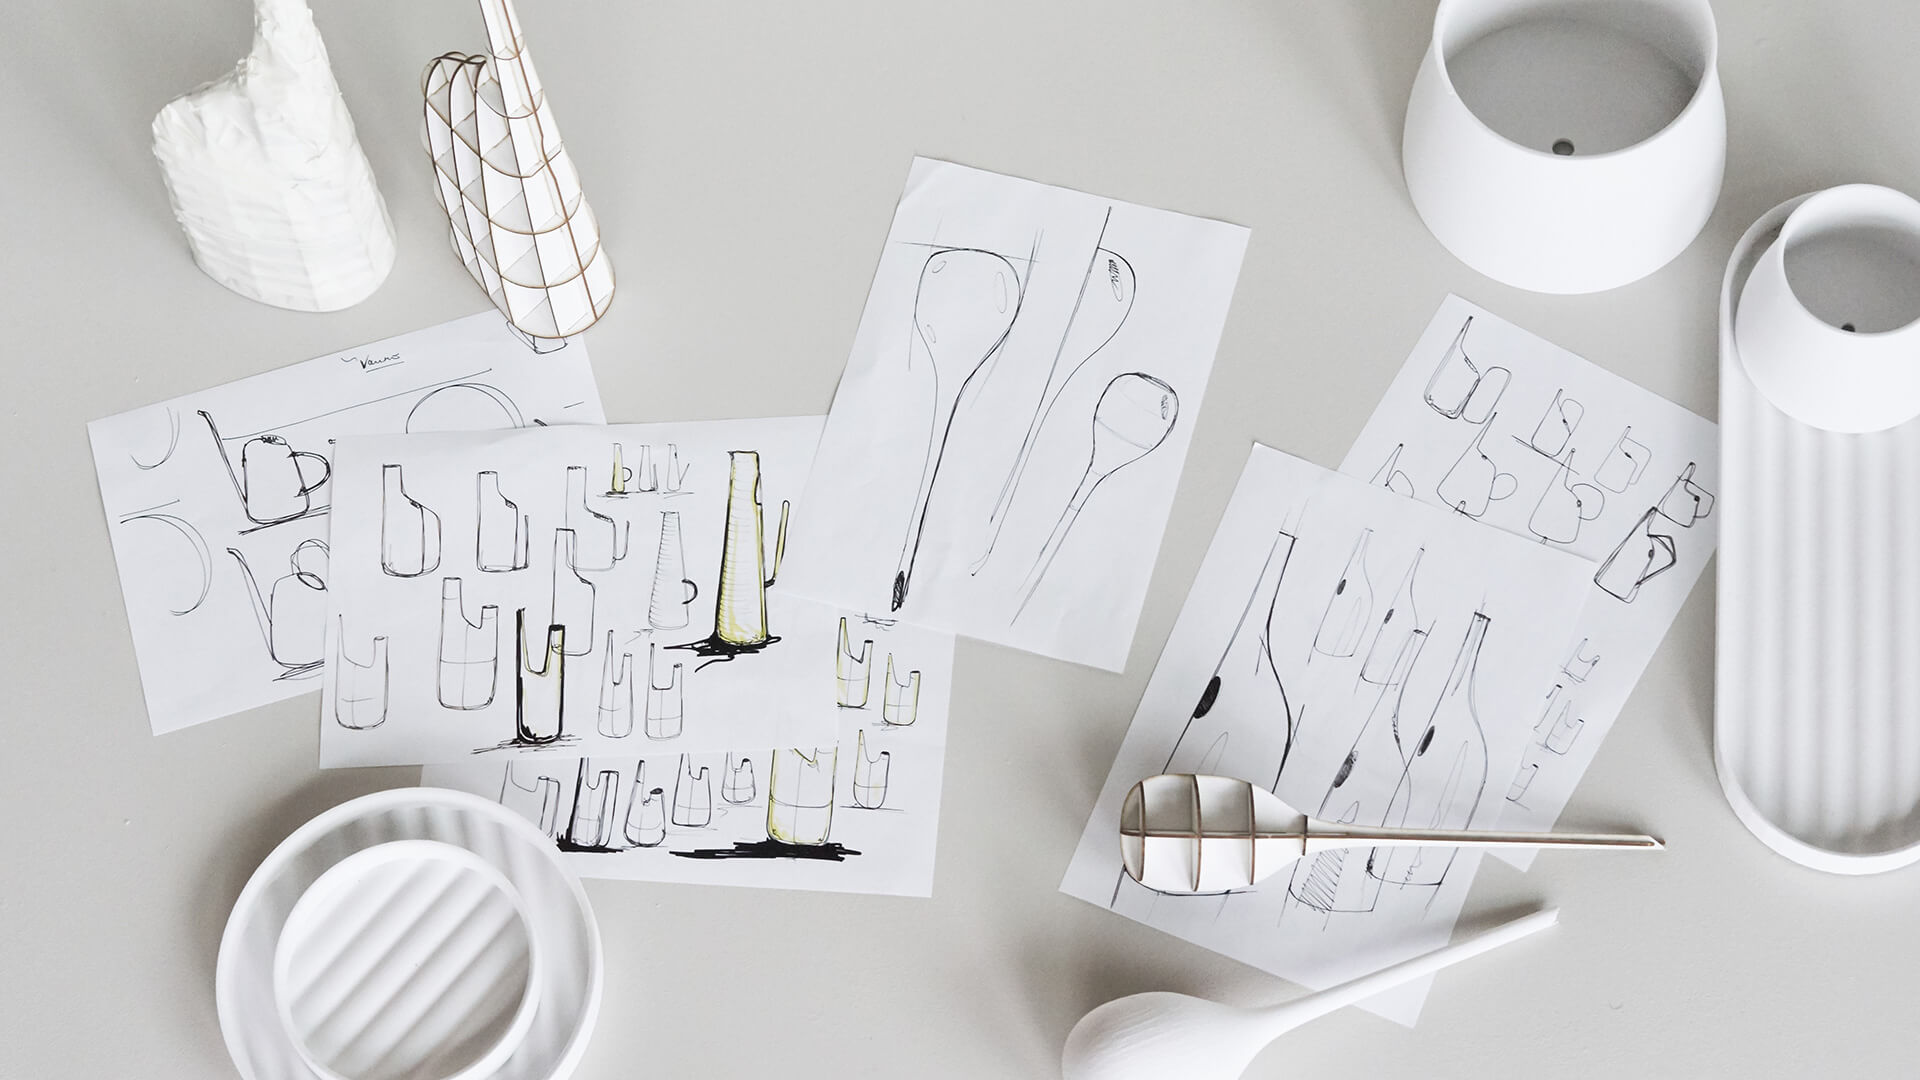 Conceptual sketches for the Terra collection | Snøhetta designs Terra collection for Georg Jensen | STIRworld